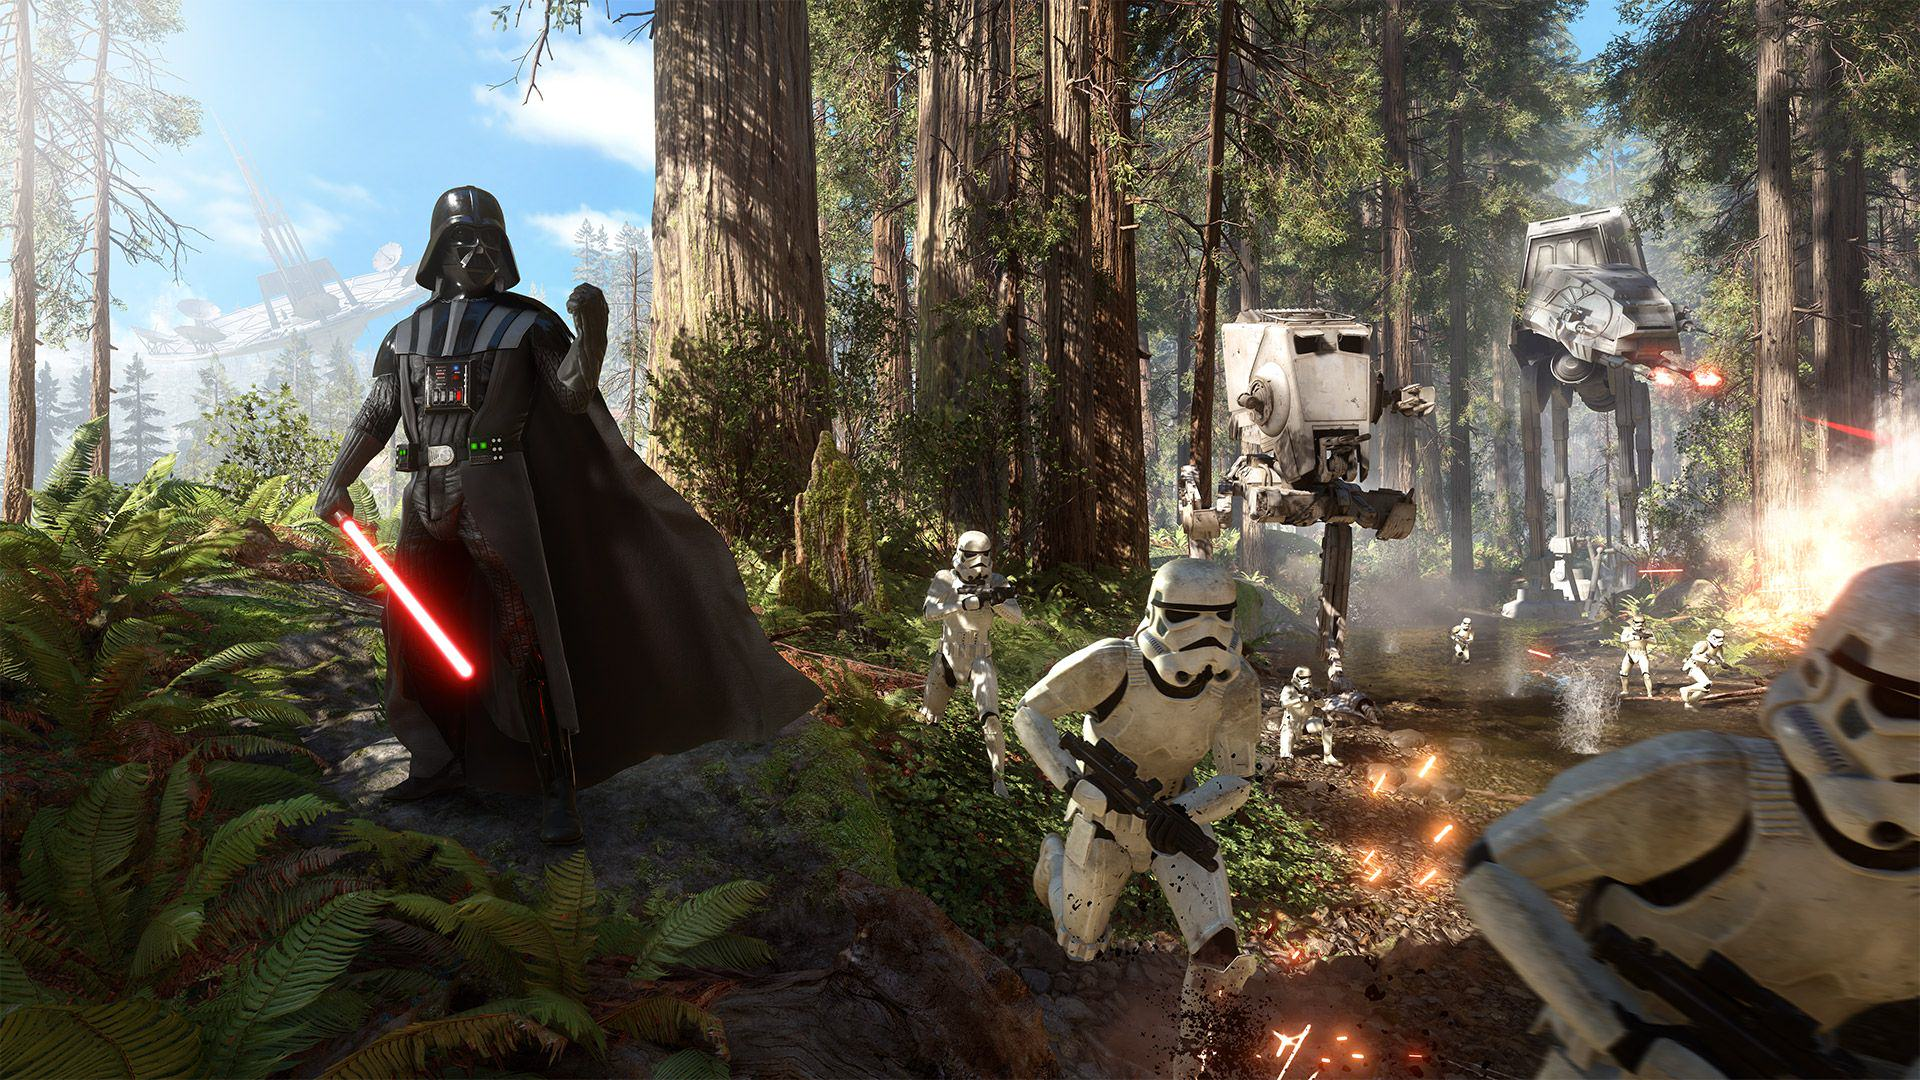 Play This Darth Vader Mini game While Star Wars Battlefront Installs UNILAD GDpVyGv21710